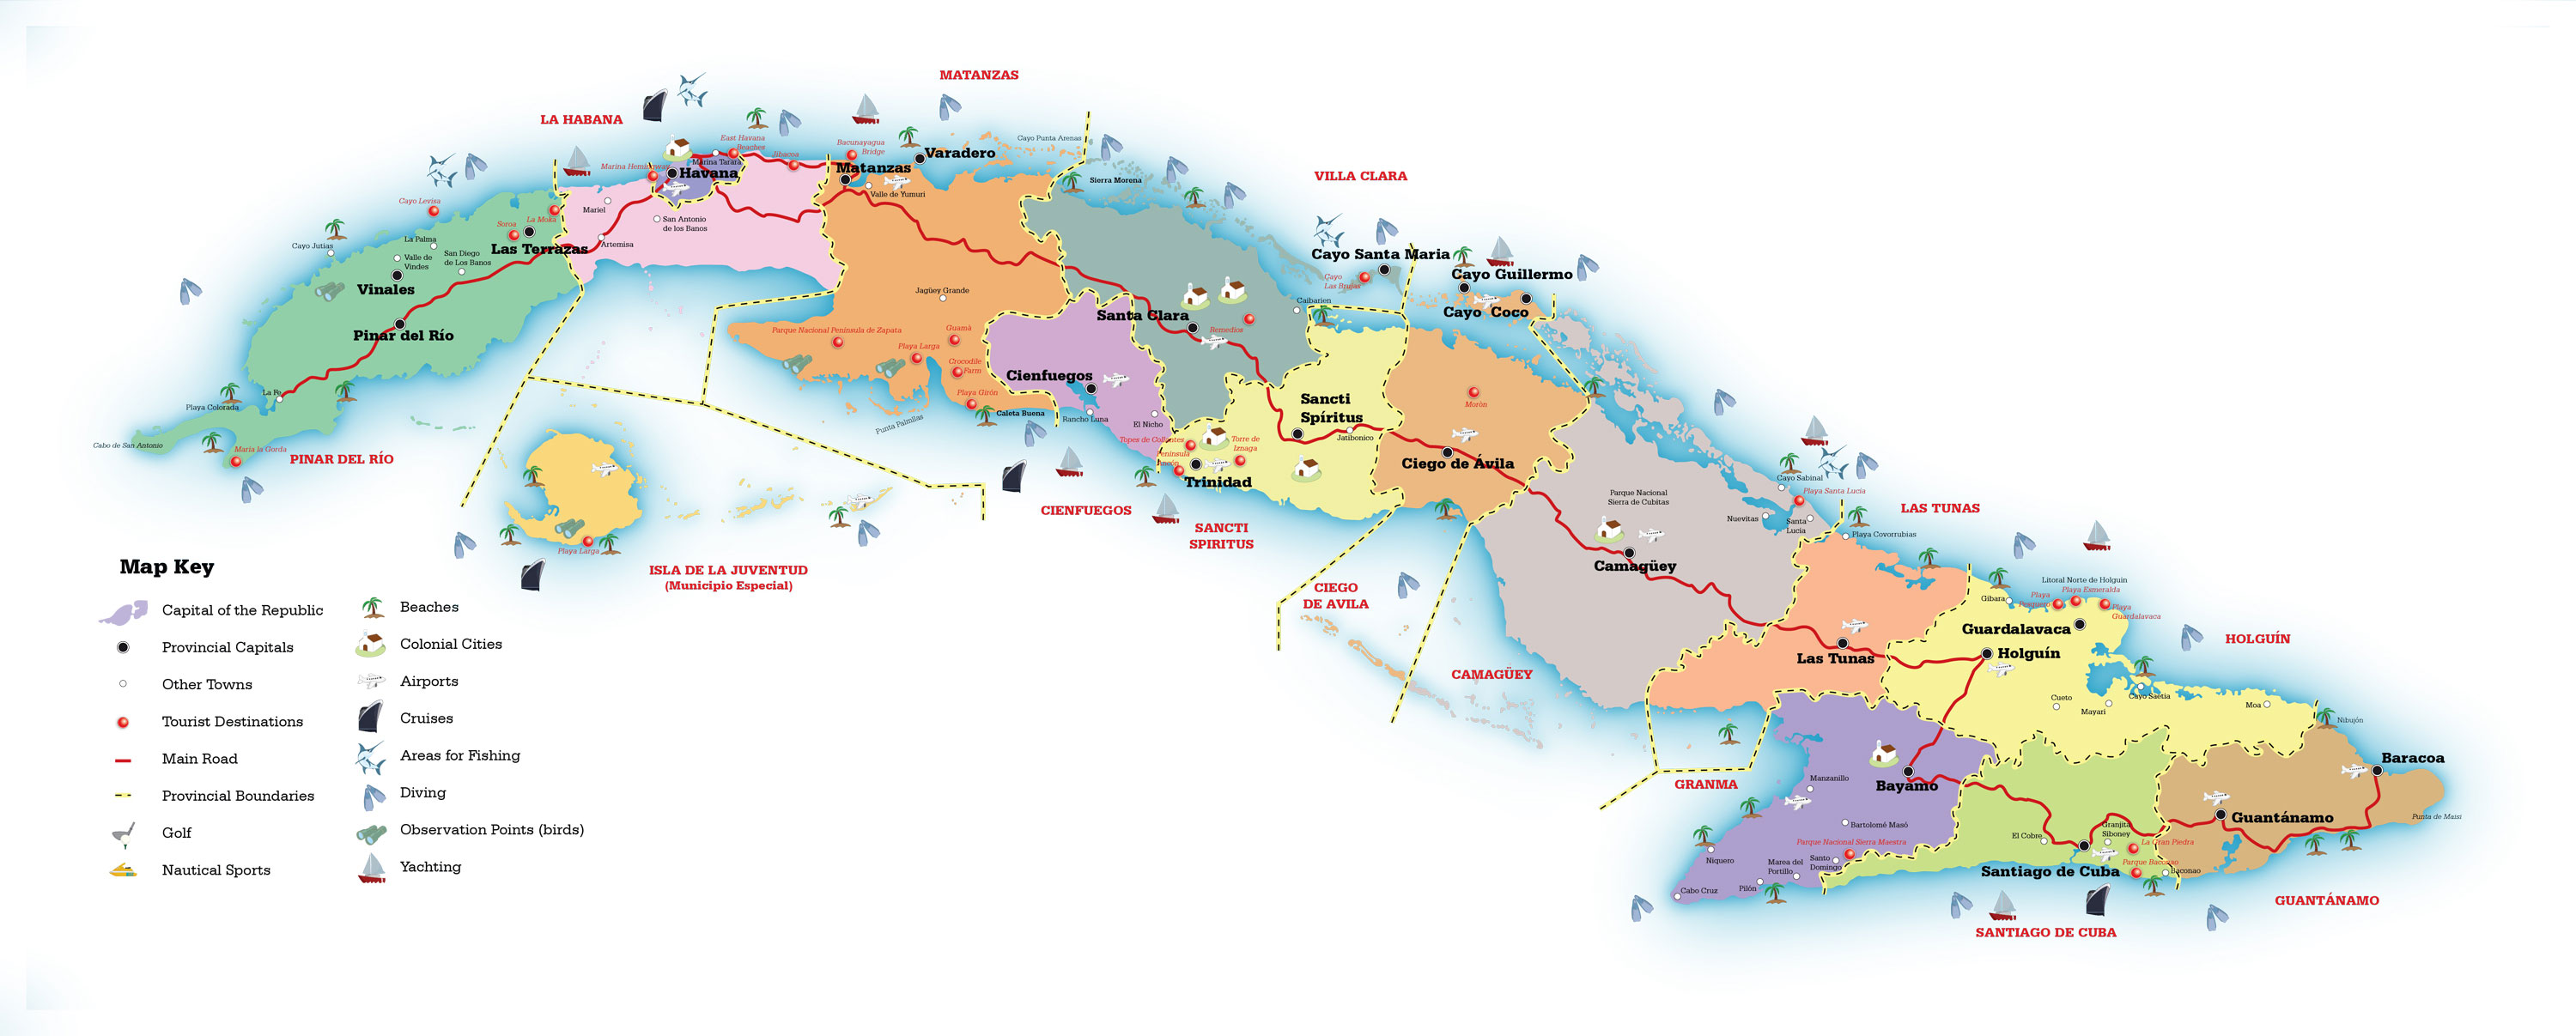 Tourist map of Cuba